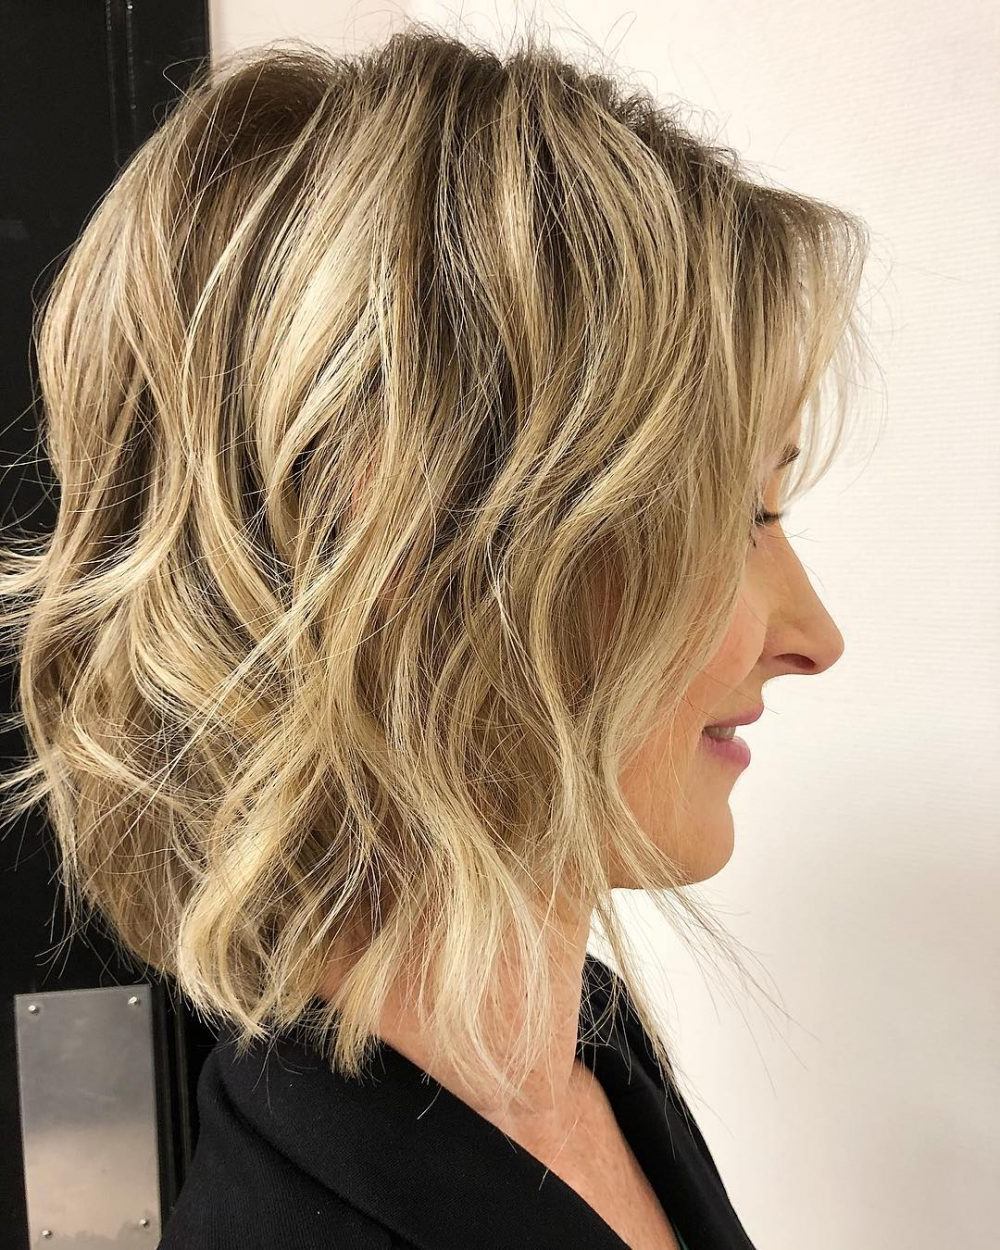 43 Perfect Short Hairstyles For Fine Hair In 2018 In Short Hairstyles For Wavy Fine Hair (View 9 of 25)